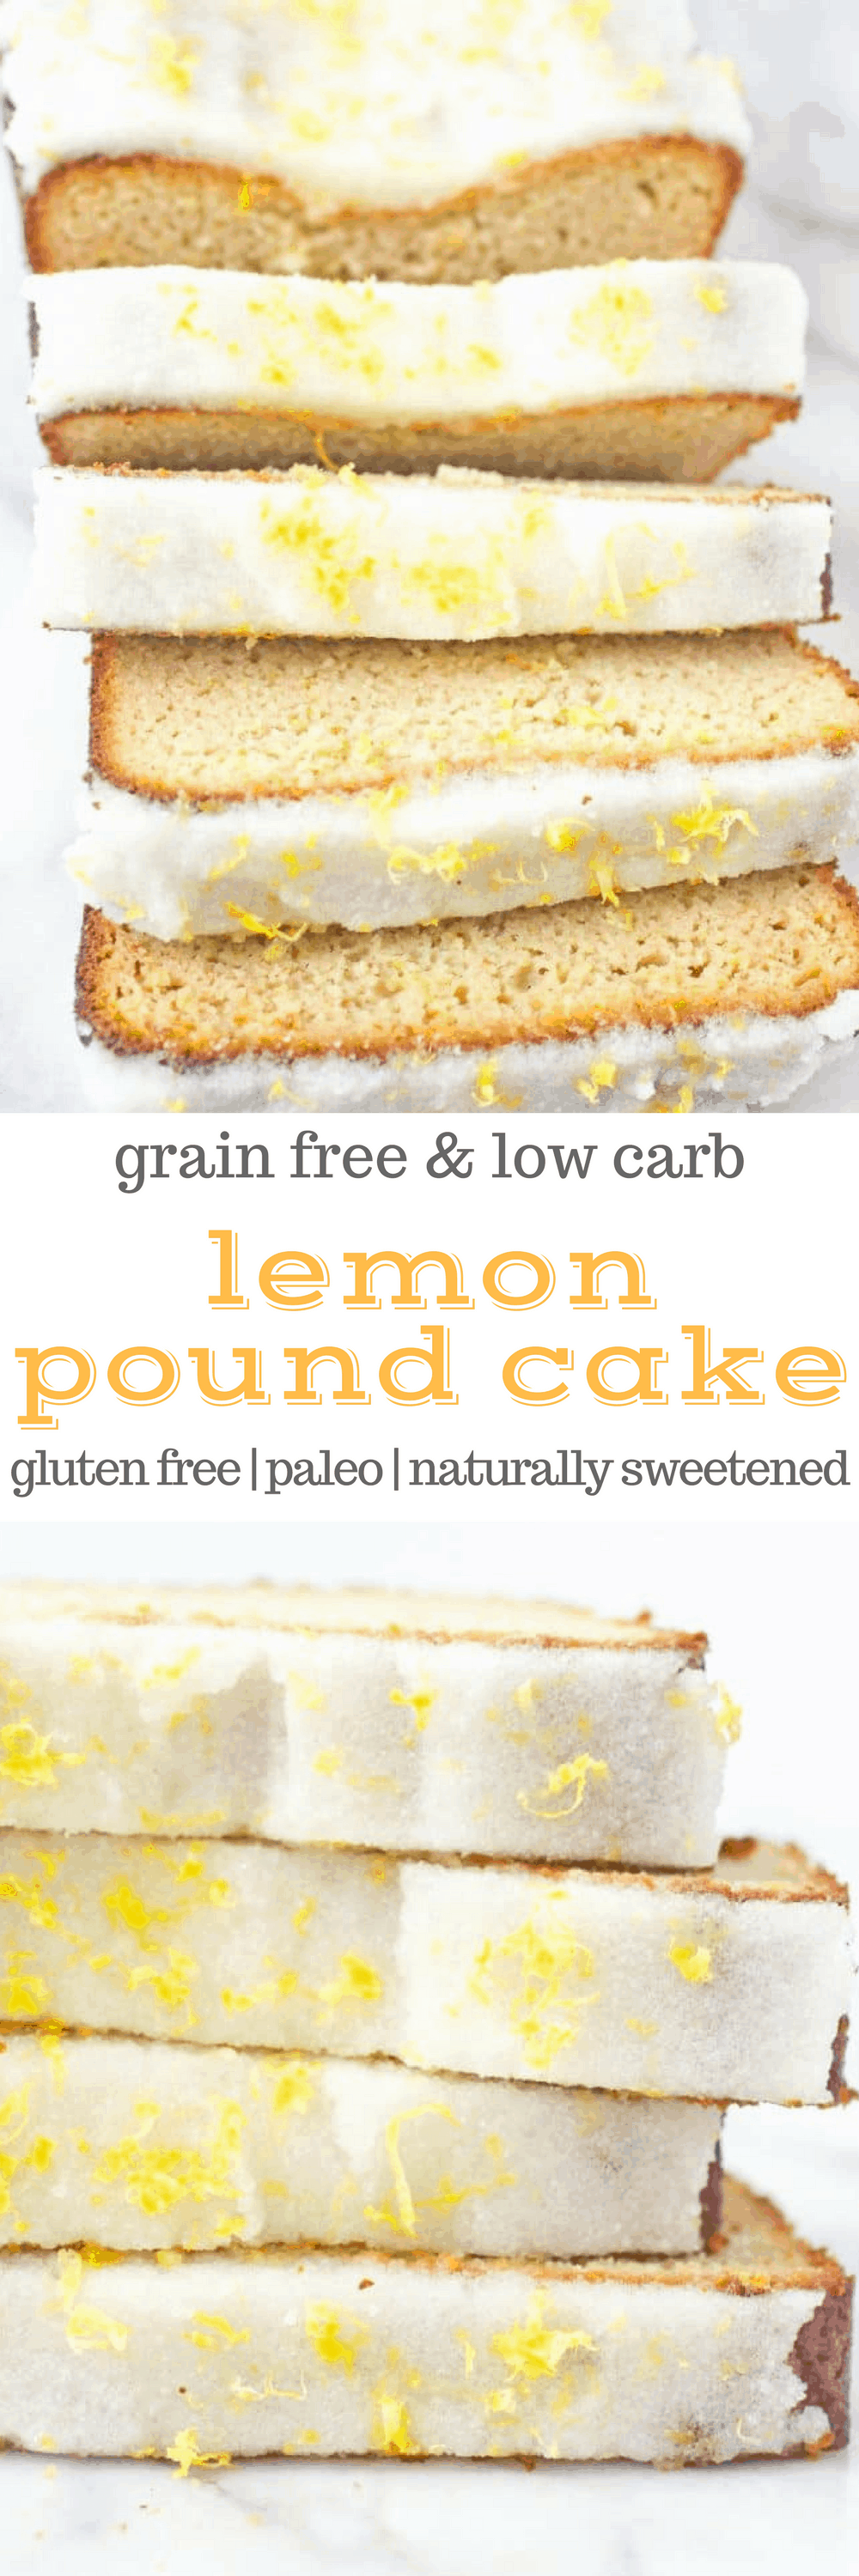 #Paleo Lemon Pound Cake makes a beautiful addition to brunch or breakfast. This recipe is easy to make, with only one bowl, and also makes a great dessert, too! This recipe is always a hit - winter, spring, summer, or fall. (#glutenfree, #lowcarb, #naturallysweetened)